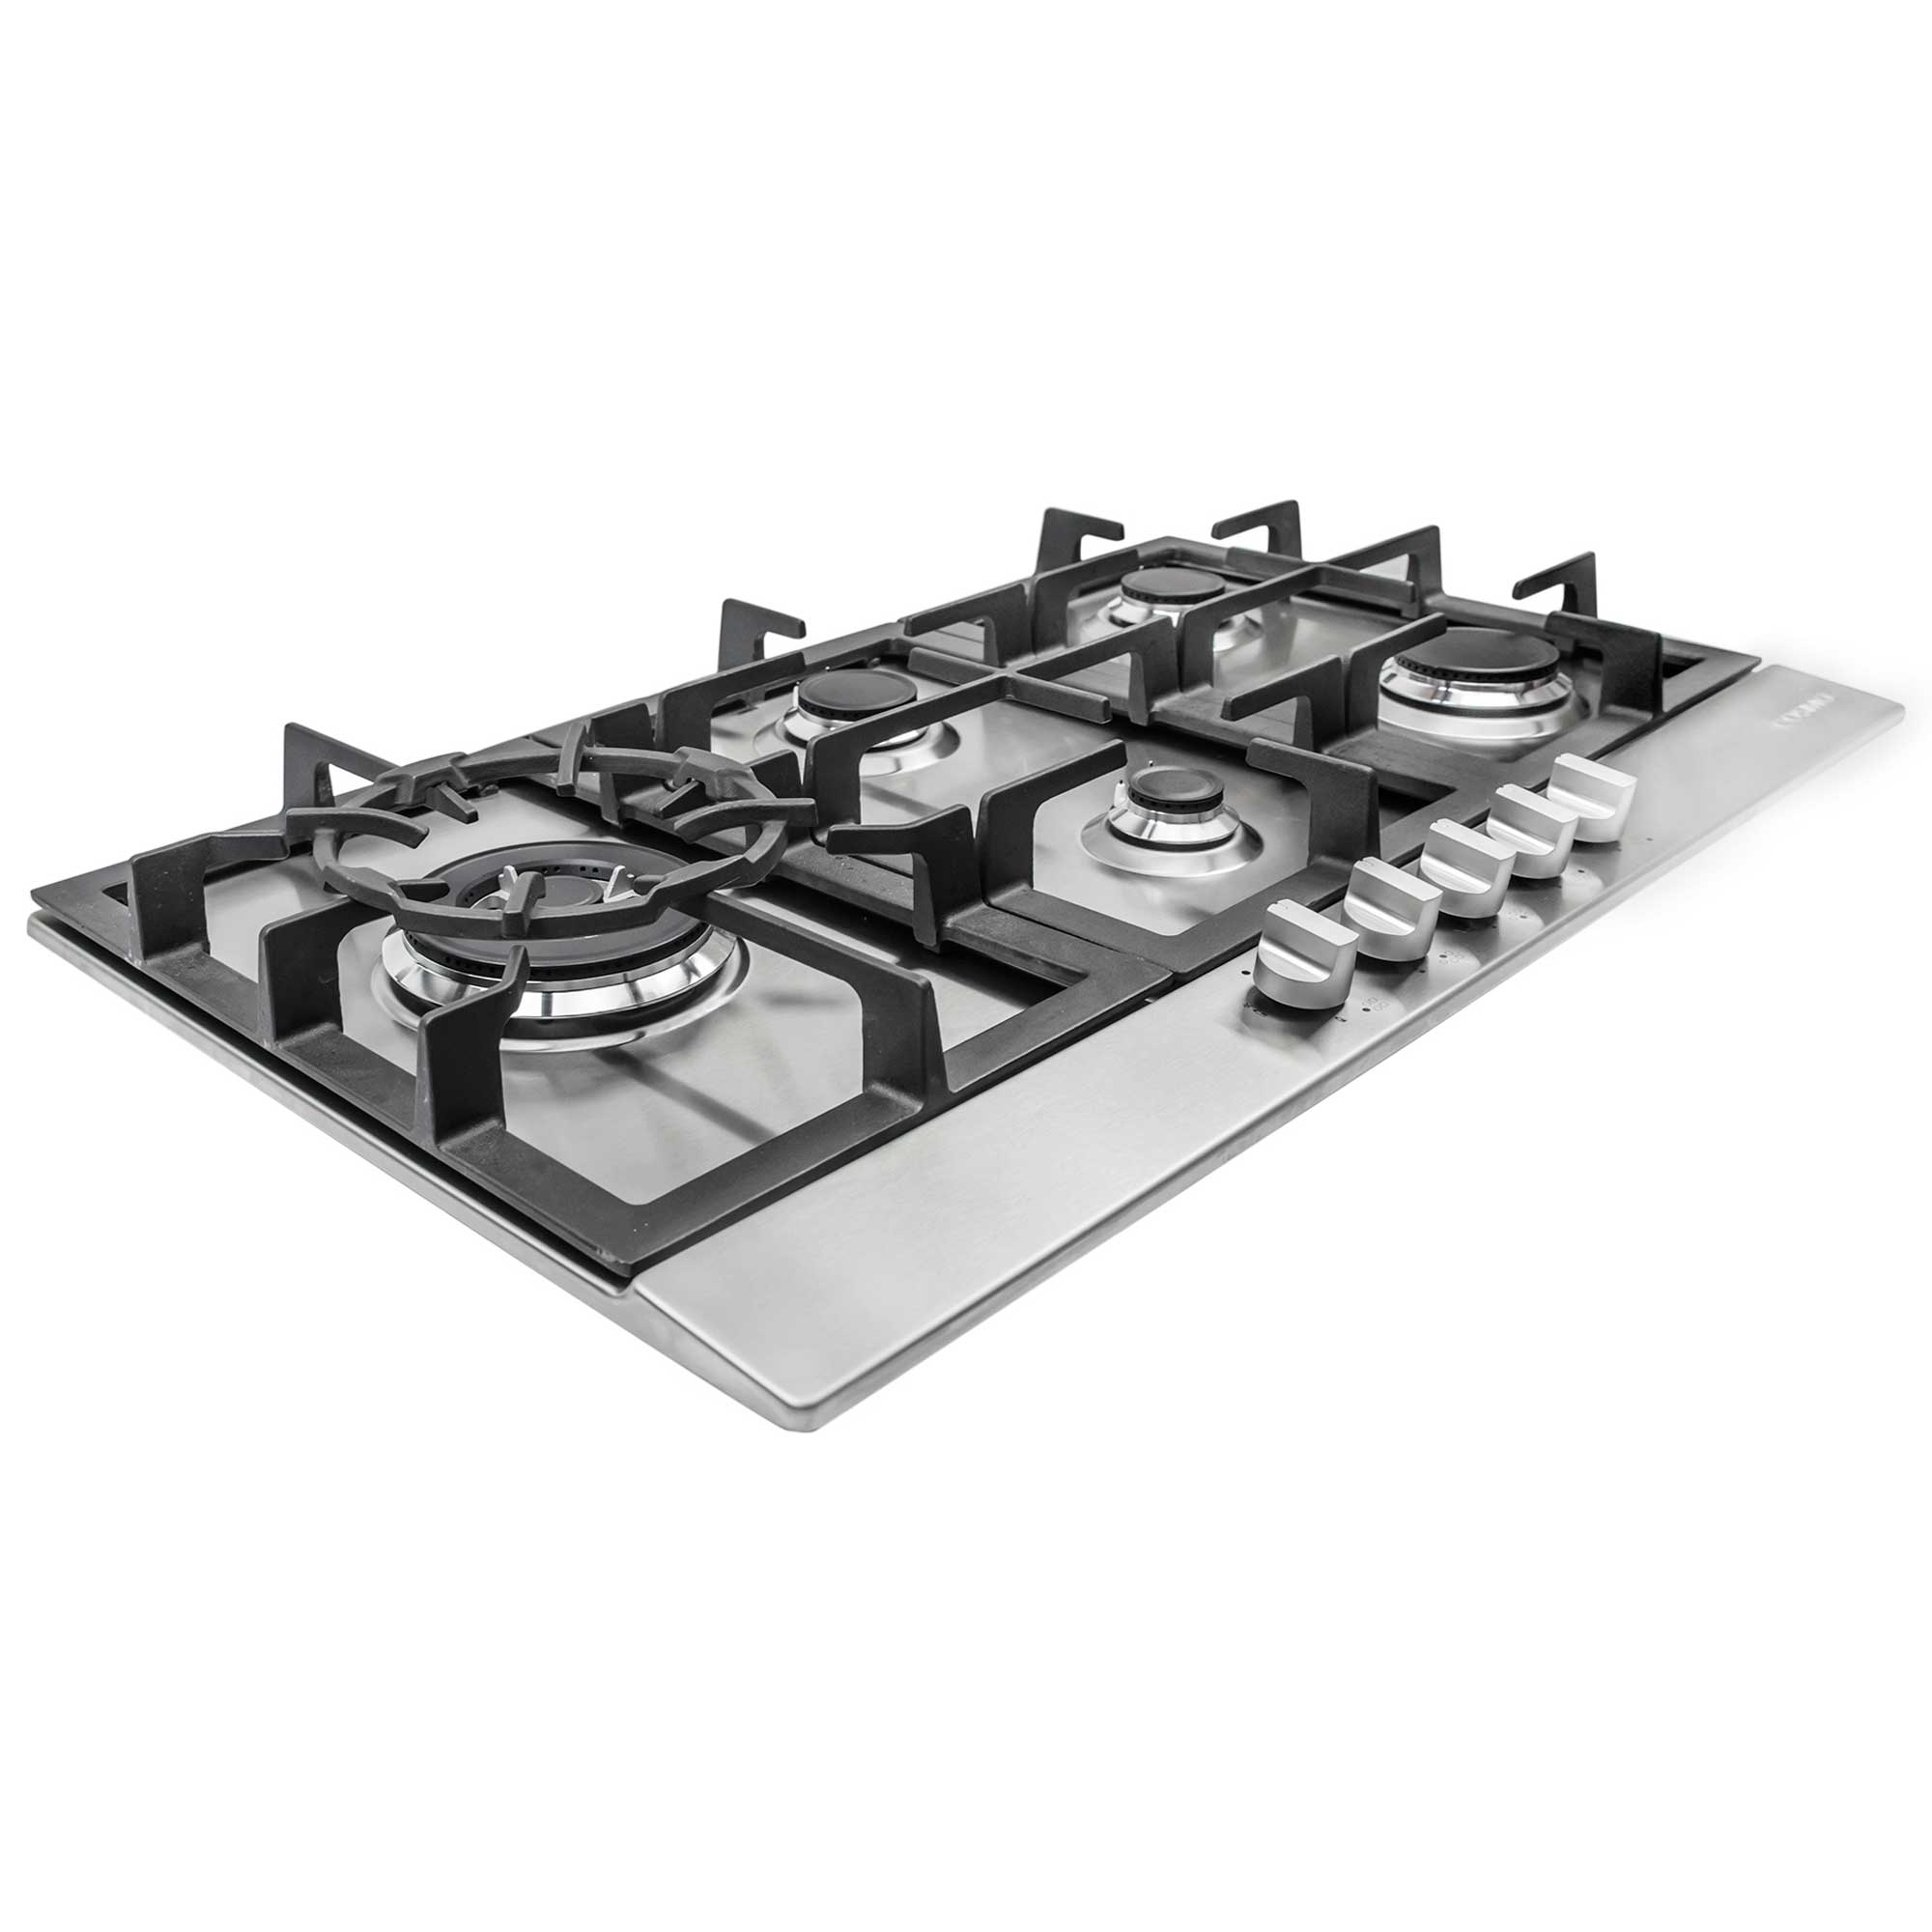 Gas Cooktop Installation Cost 30 Quot Gas Cooktop Stainless Steel W 5 Burners 850sltx E